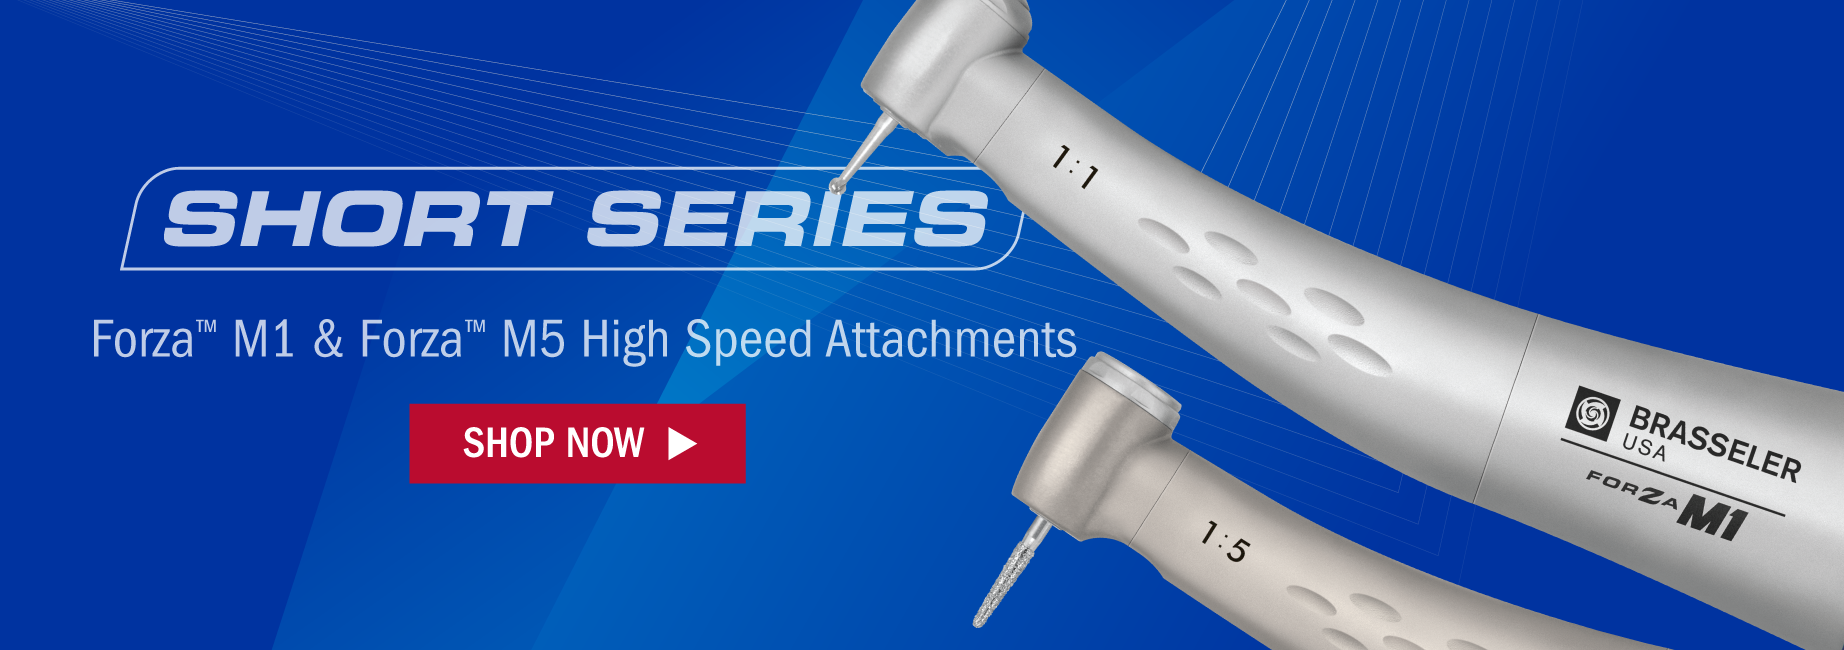 Forza Short Series Electric Dental Attachments from Brasseler Canada